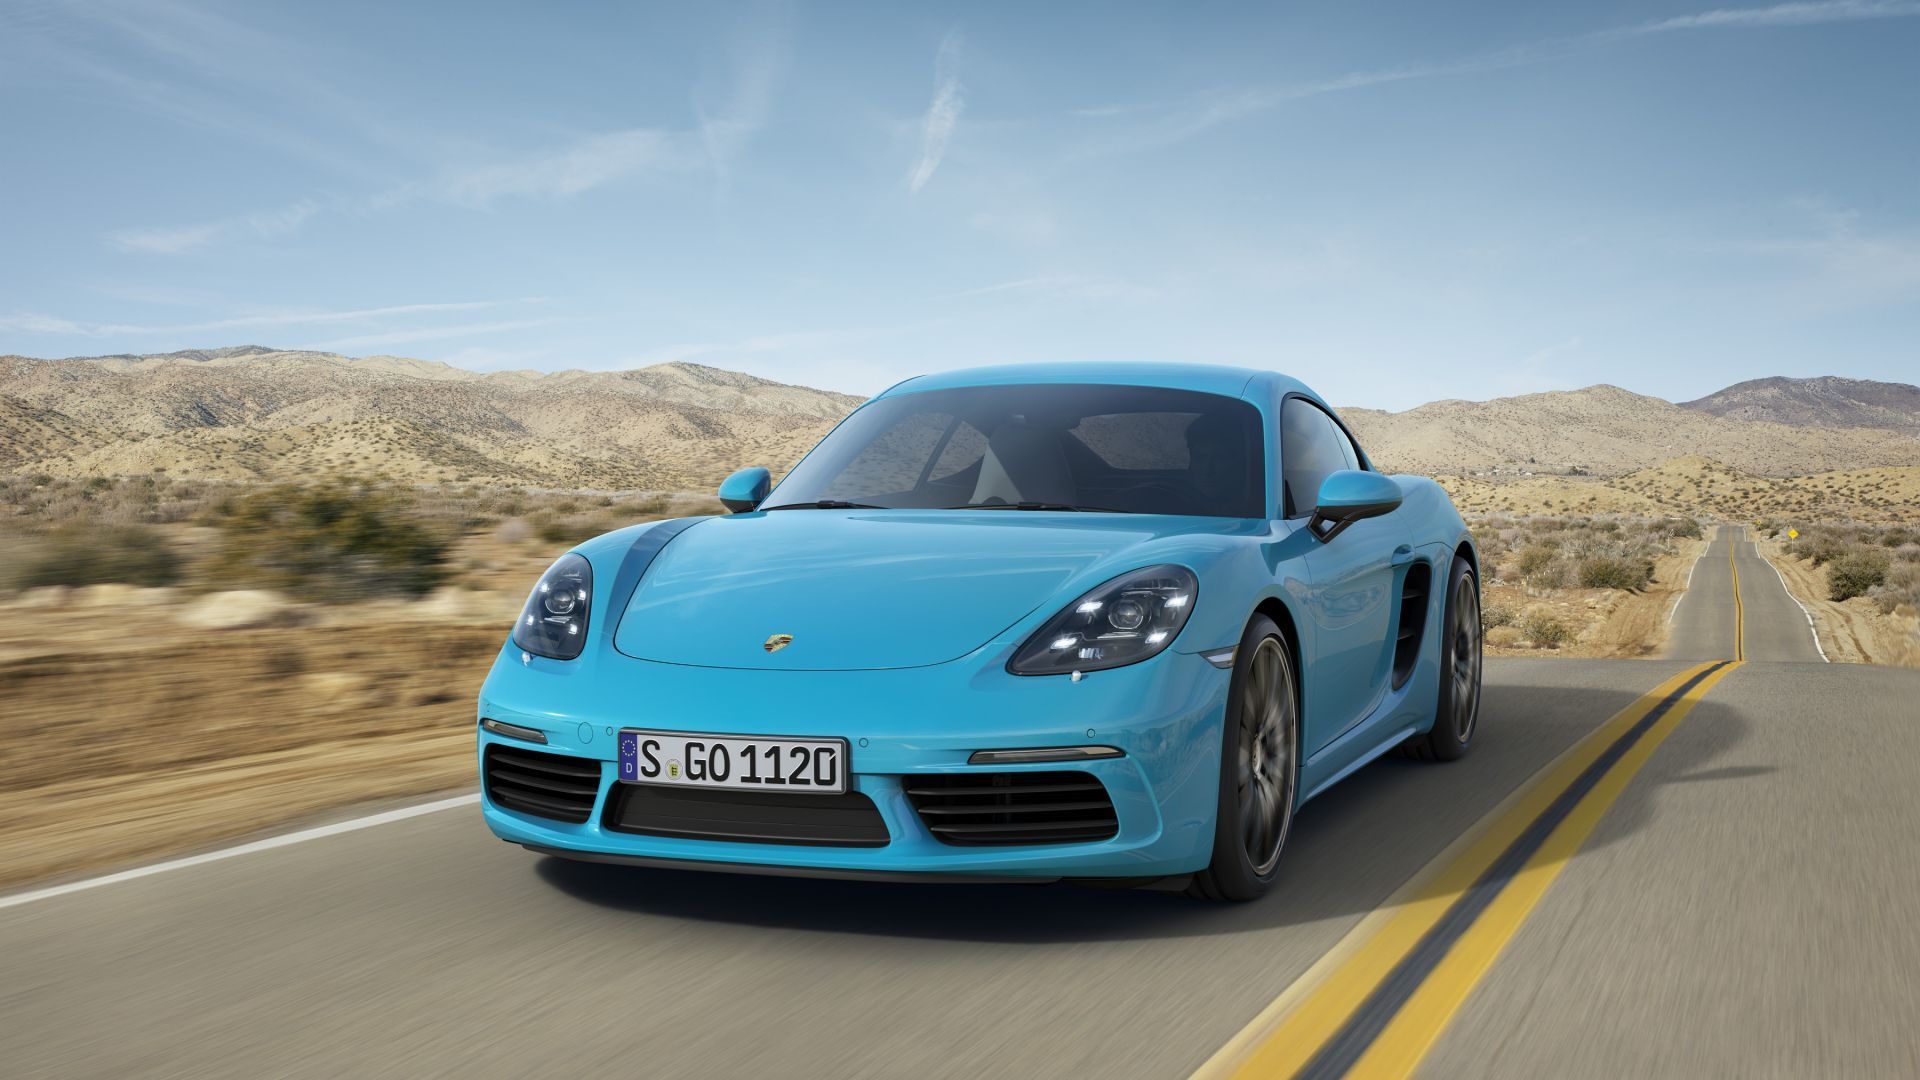 Porsche 718 Cayman S, Beijing Motor Show 2016, Auto China 2016, coupe, blue (horizontal)